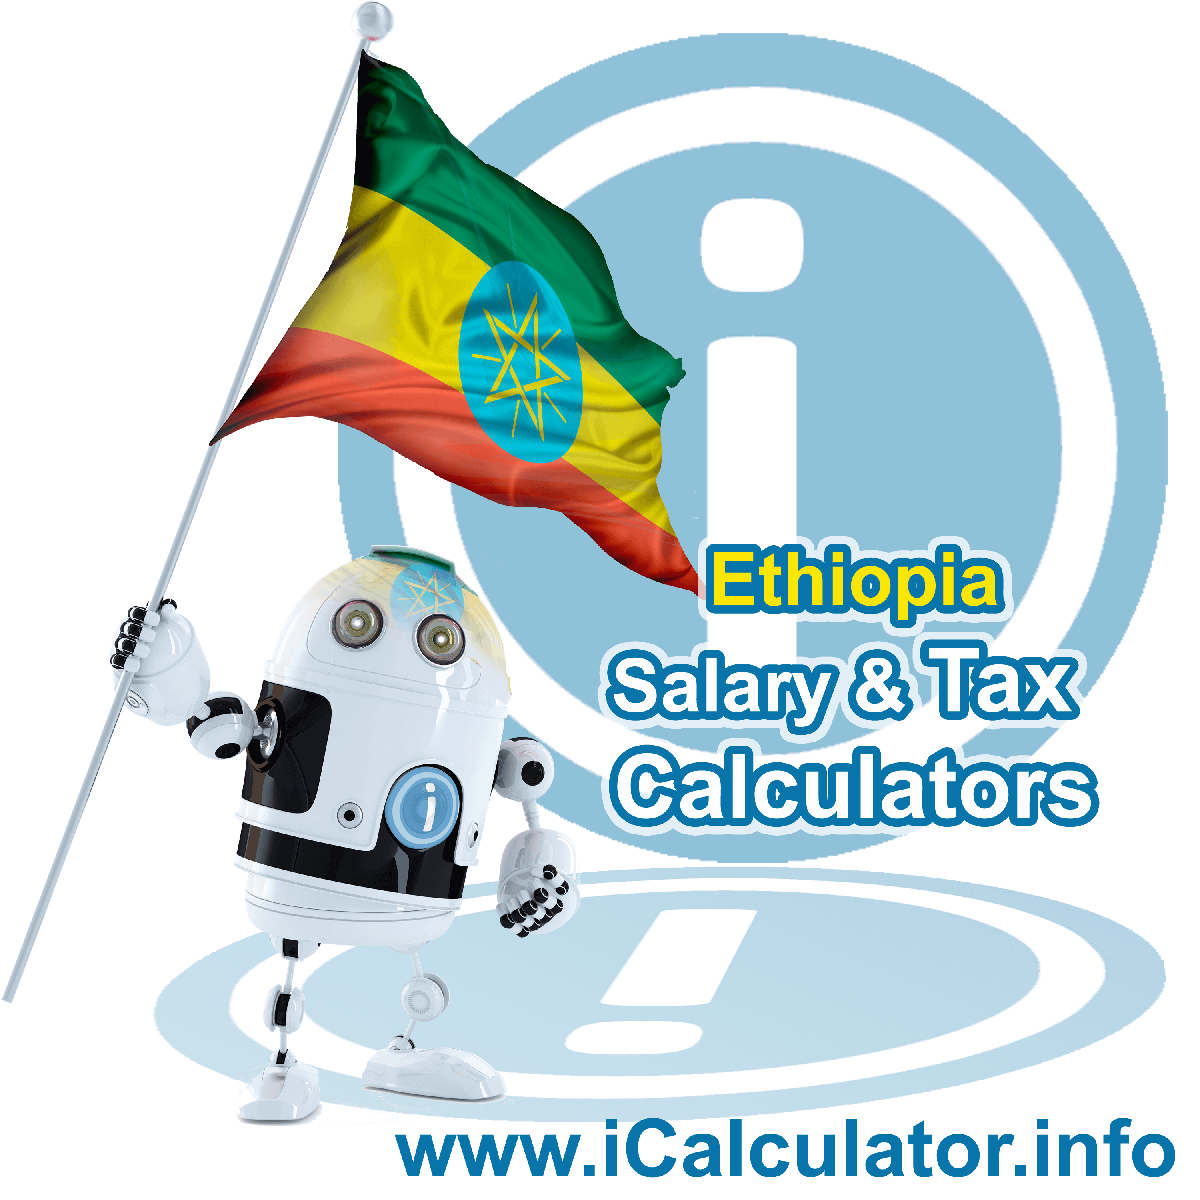 Ethiopia Wage Calculator. This image shows the Ethiopia flag and information relating to the tax formula for the Ethiopia Tax Calculator